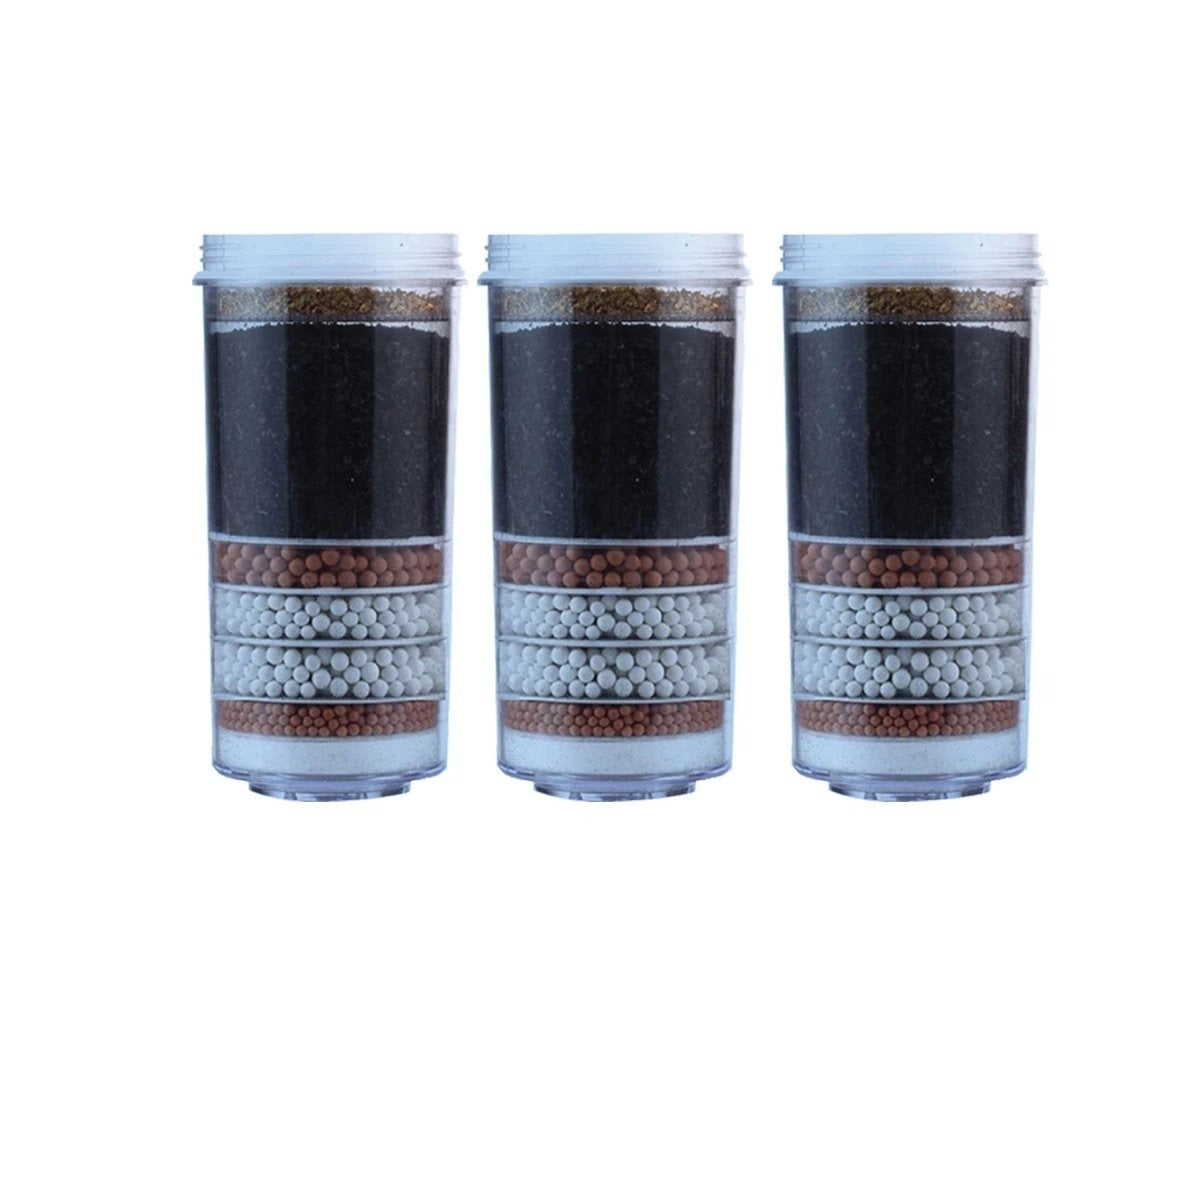 Aimex MDM Water Filter 8 Stage Fluoride Reduction with KDF X 3 - MDMAustralian